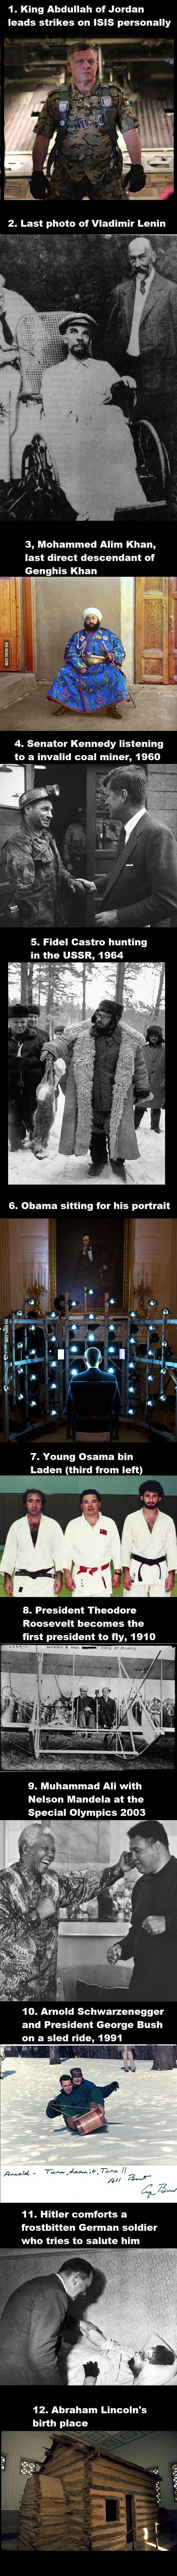 Collection of interesting pictures I found over the years, Part 31: Leaders - 9GAG